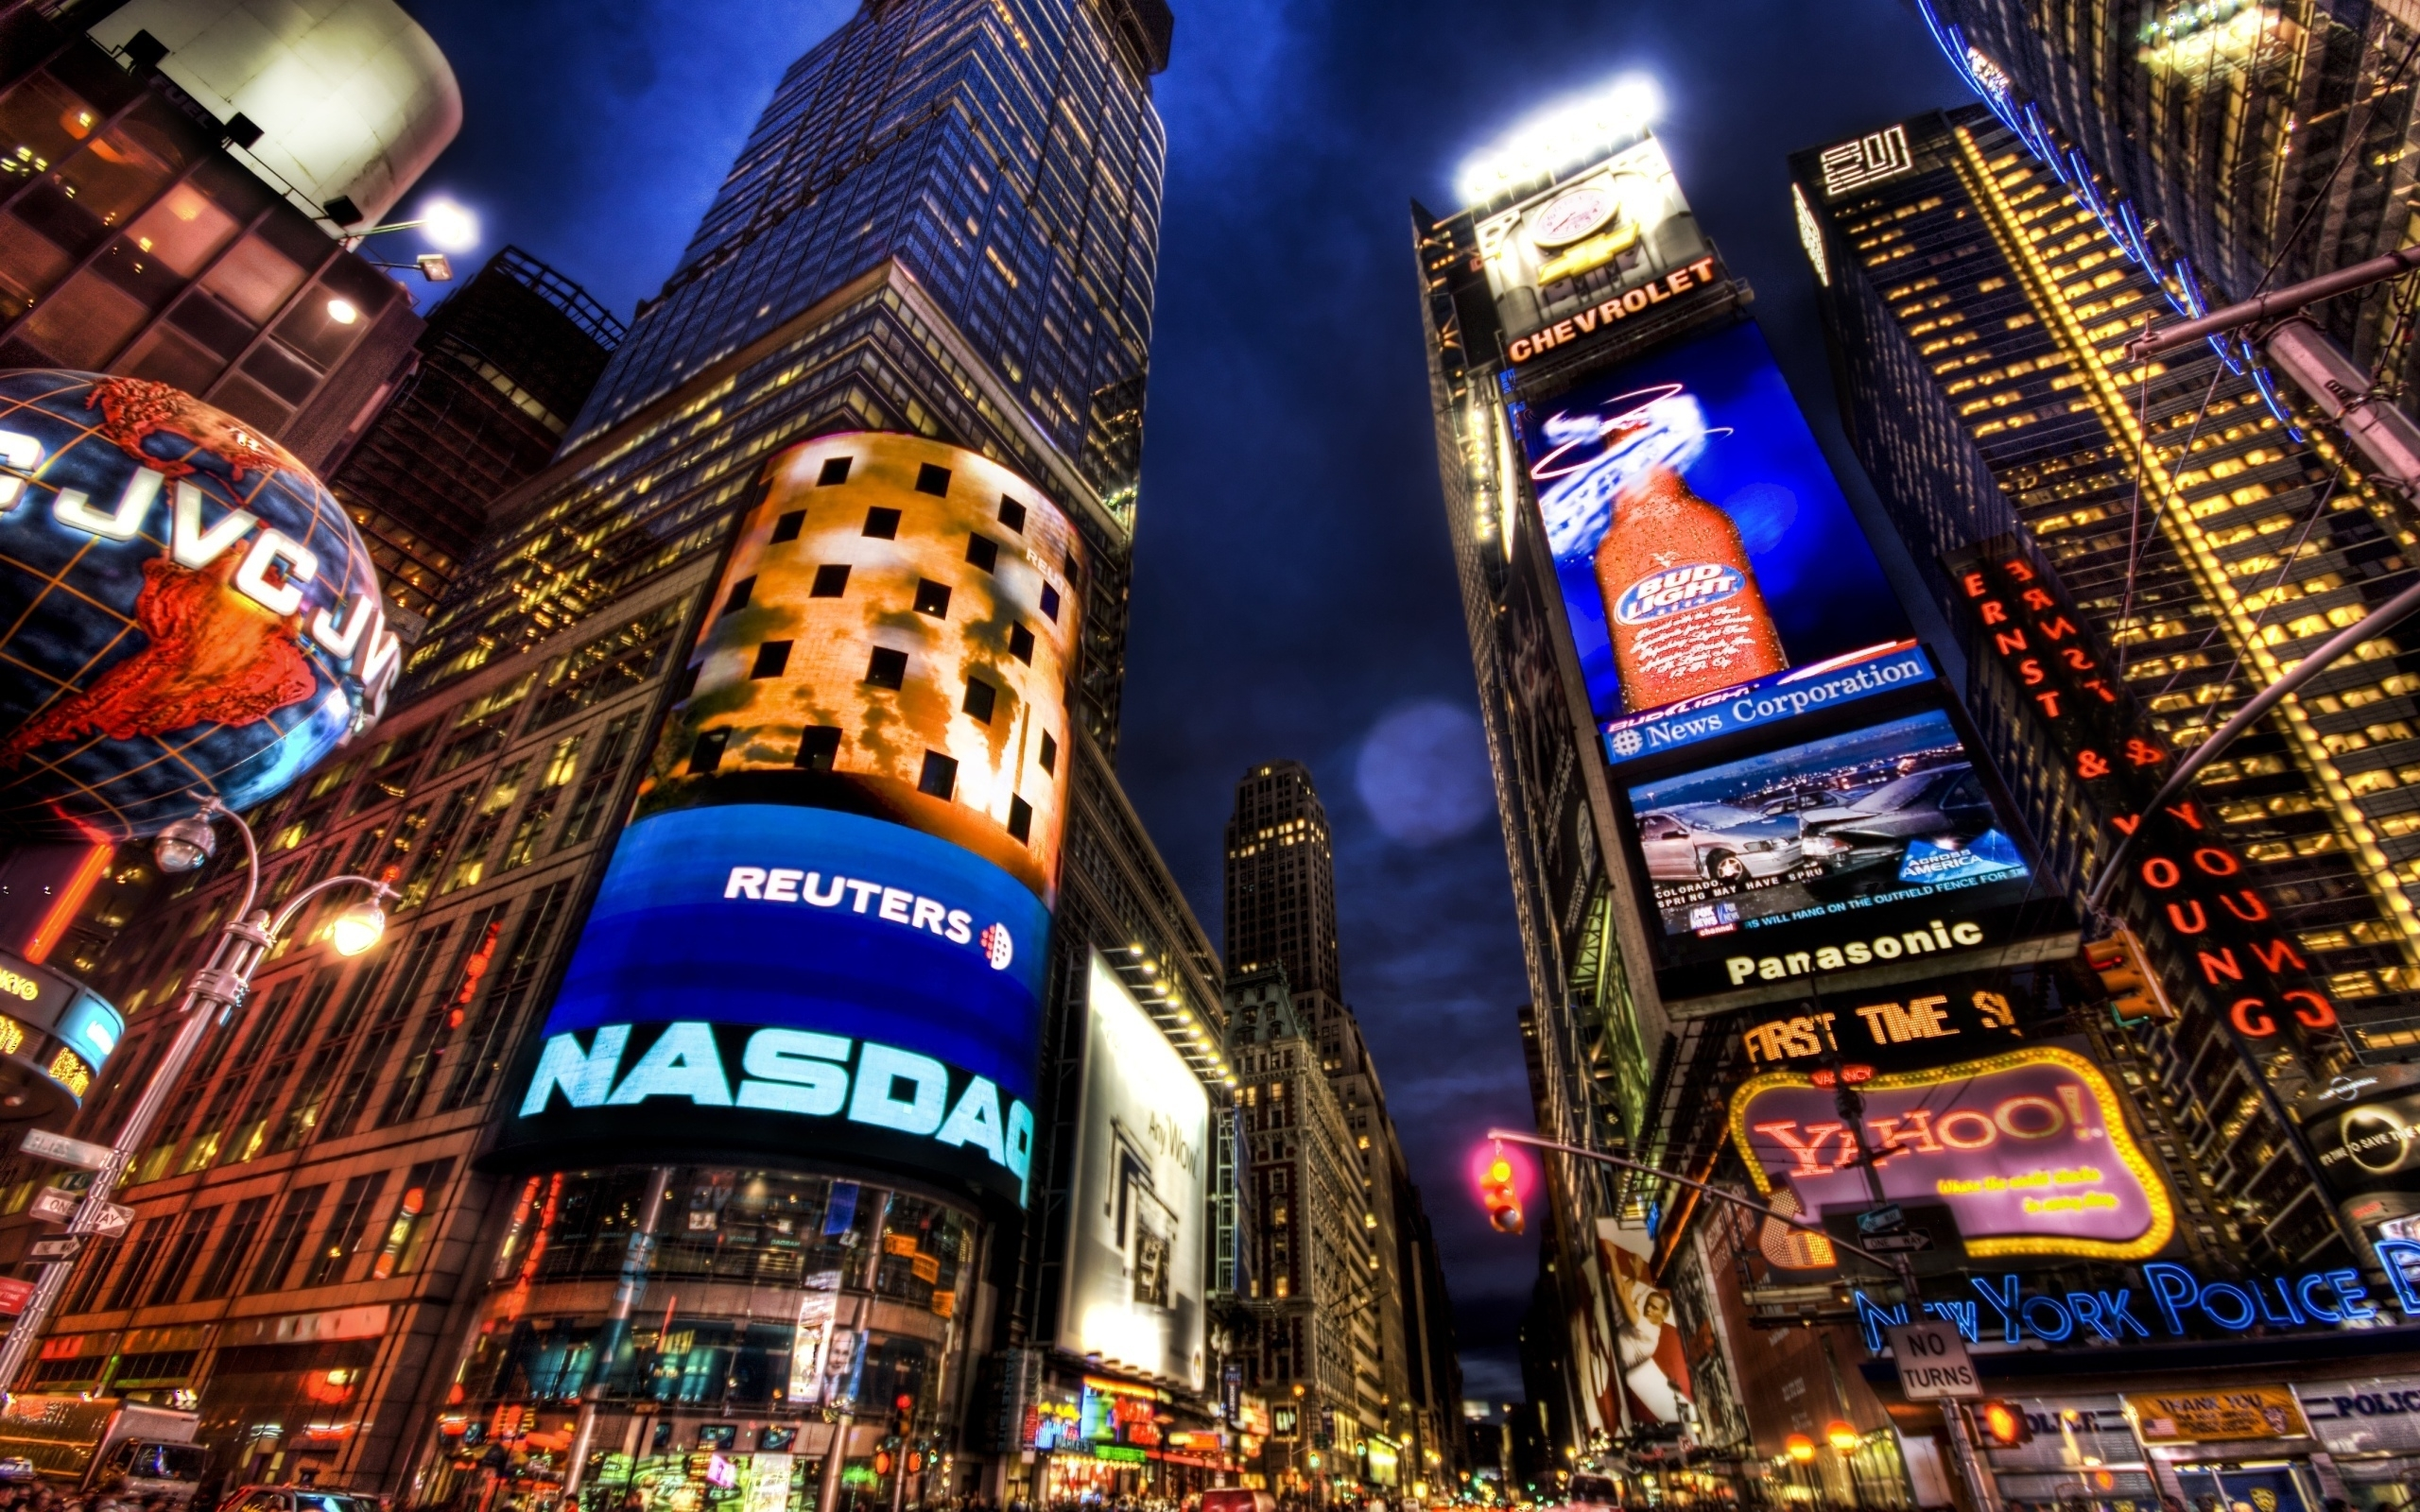 download times square 27031 2560x1600 px high resolution wallpaper